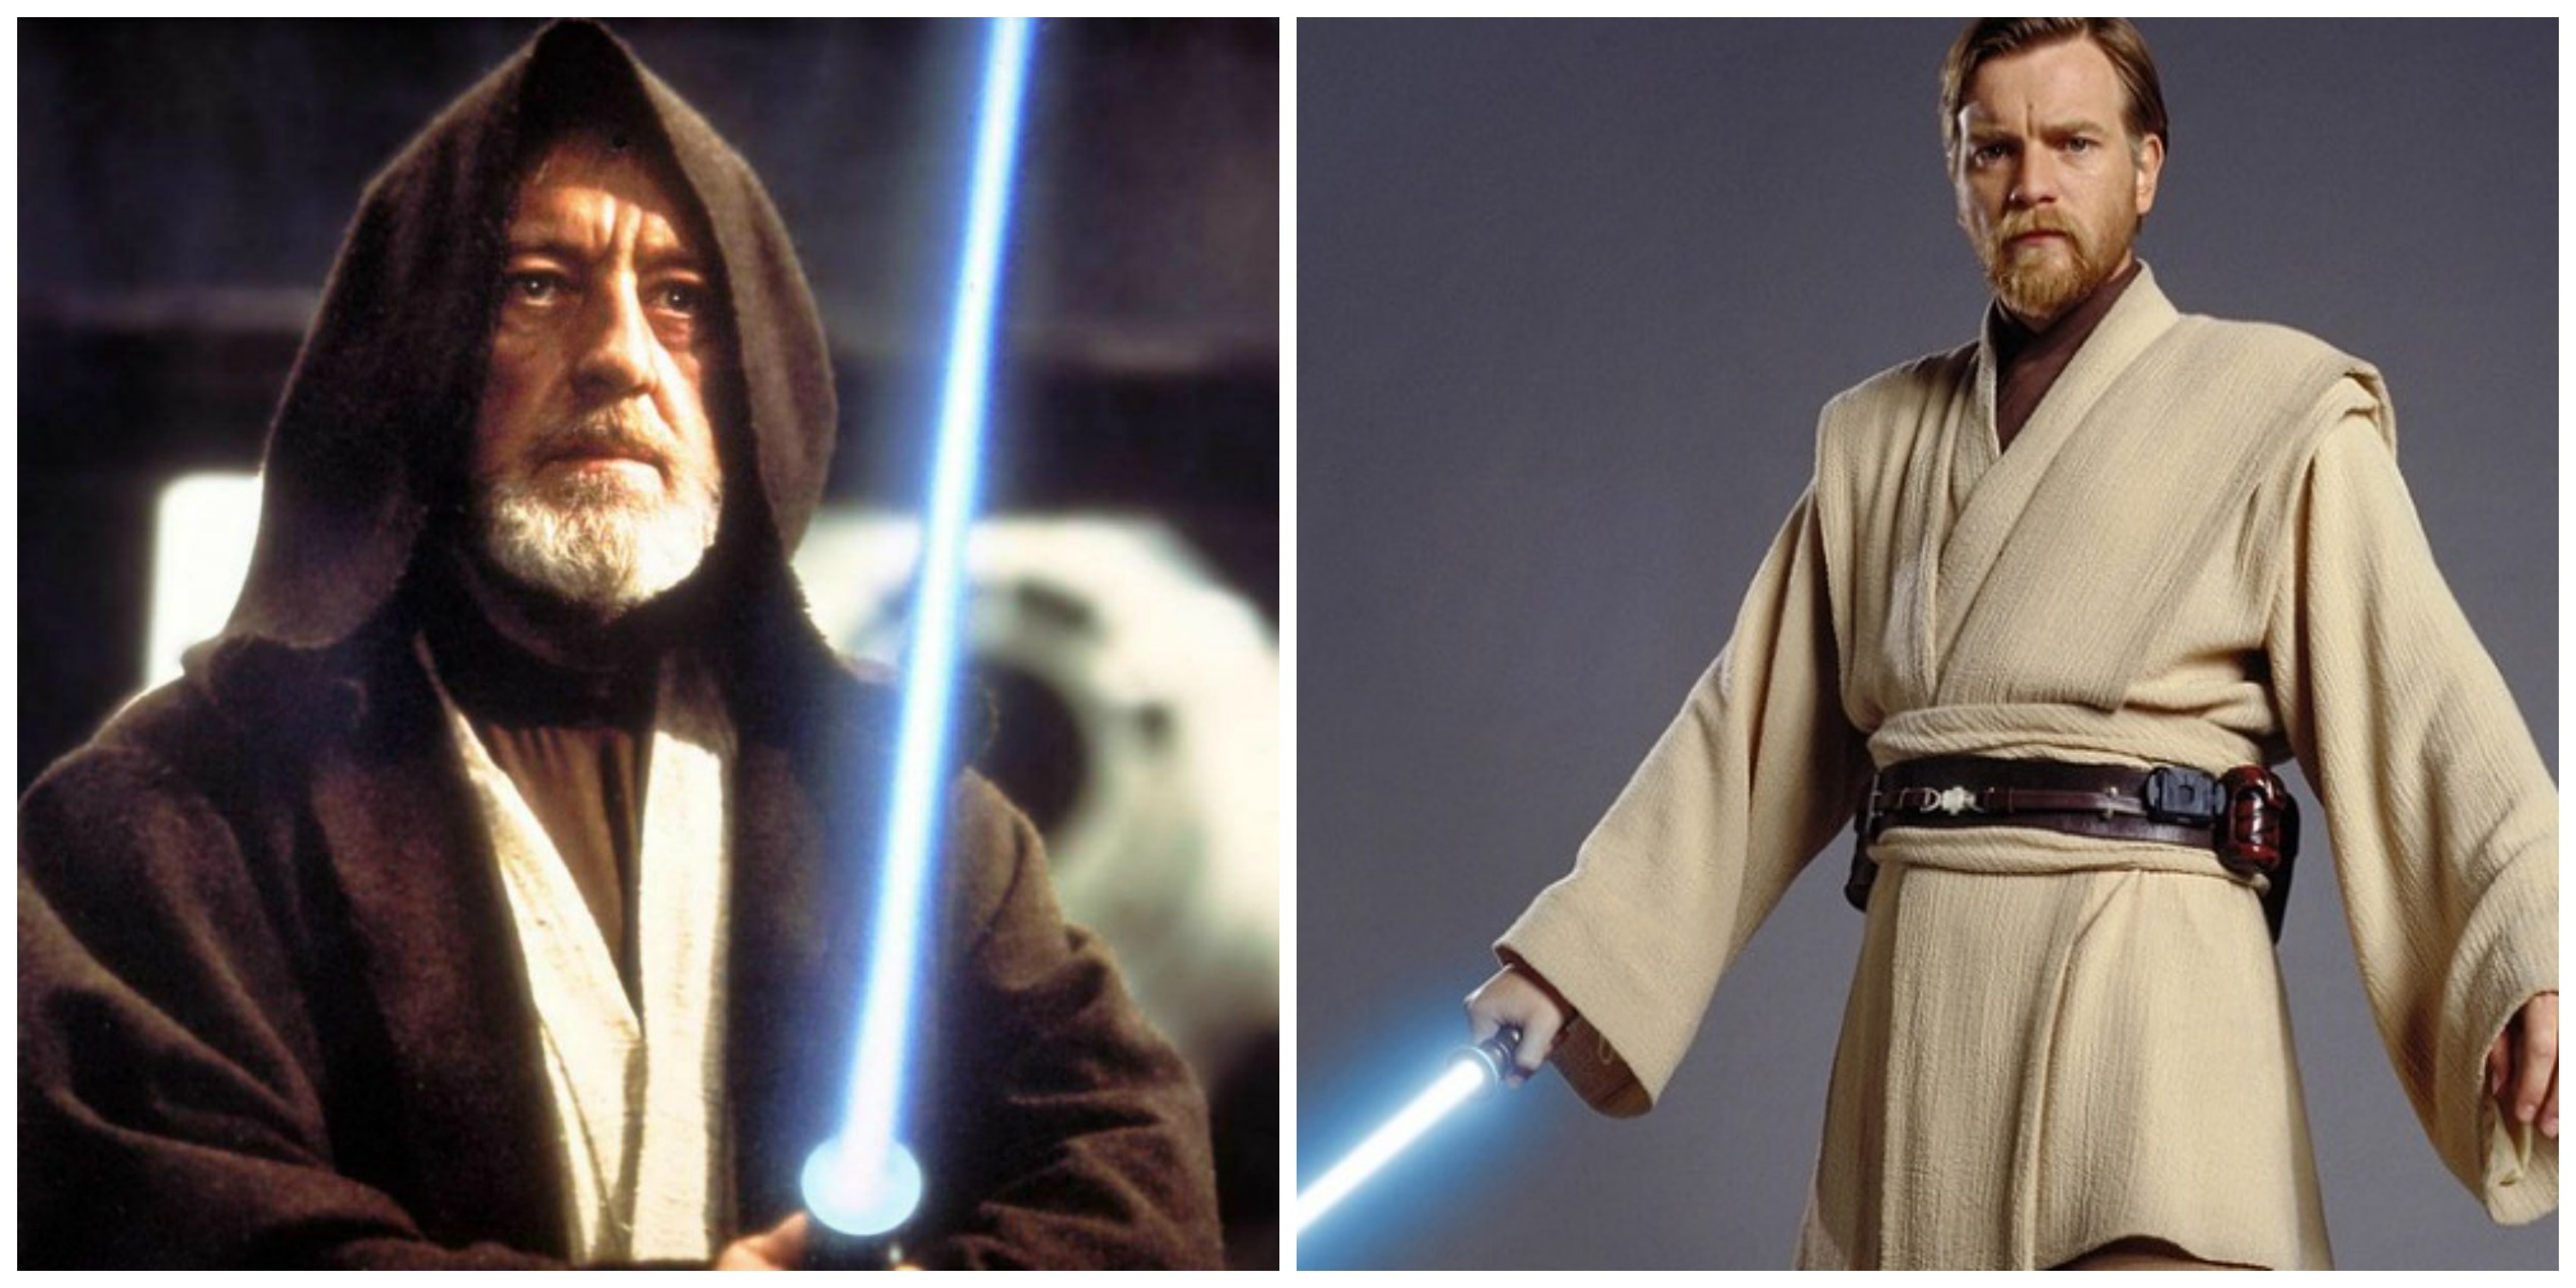 Obi-Wan Kenobi movie reportedly in the works